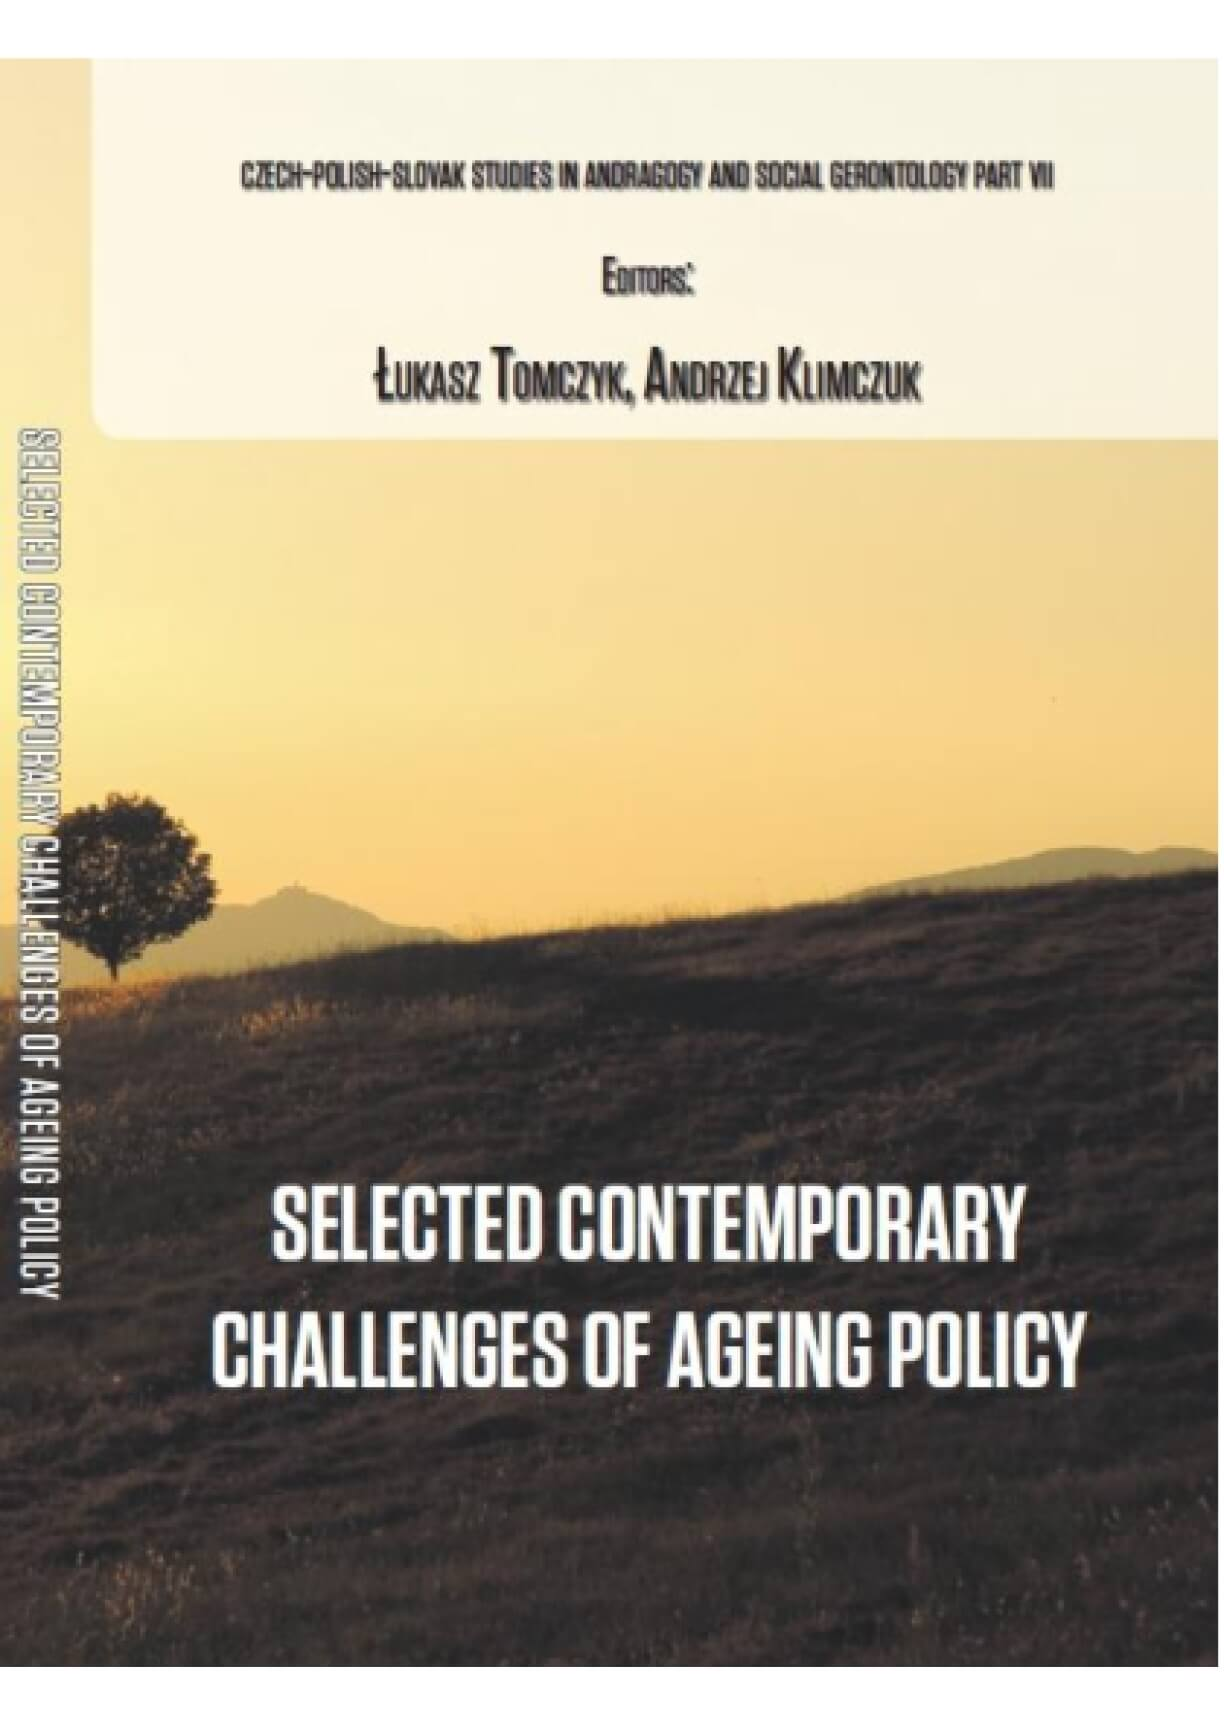 Selected Contemporary Challenges of Ageing Policy